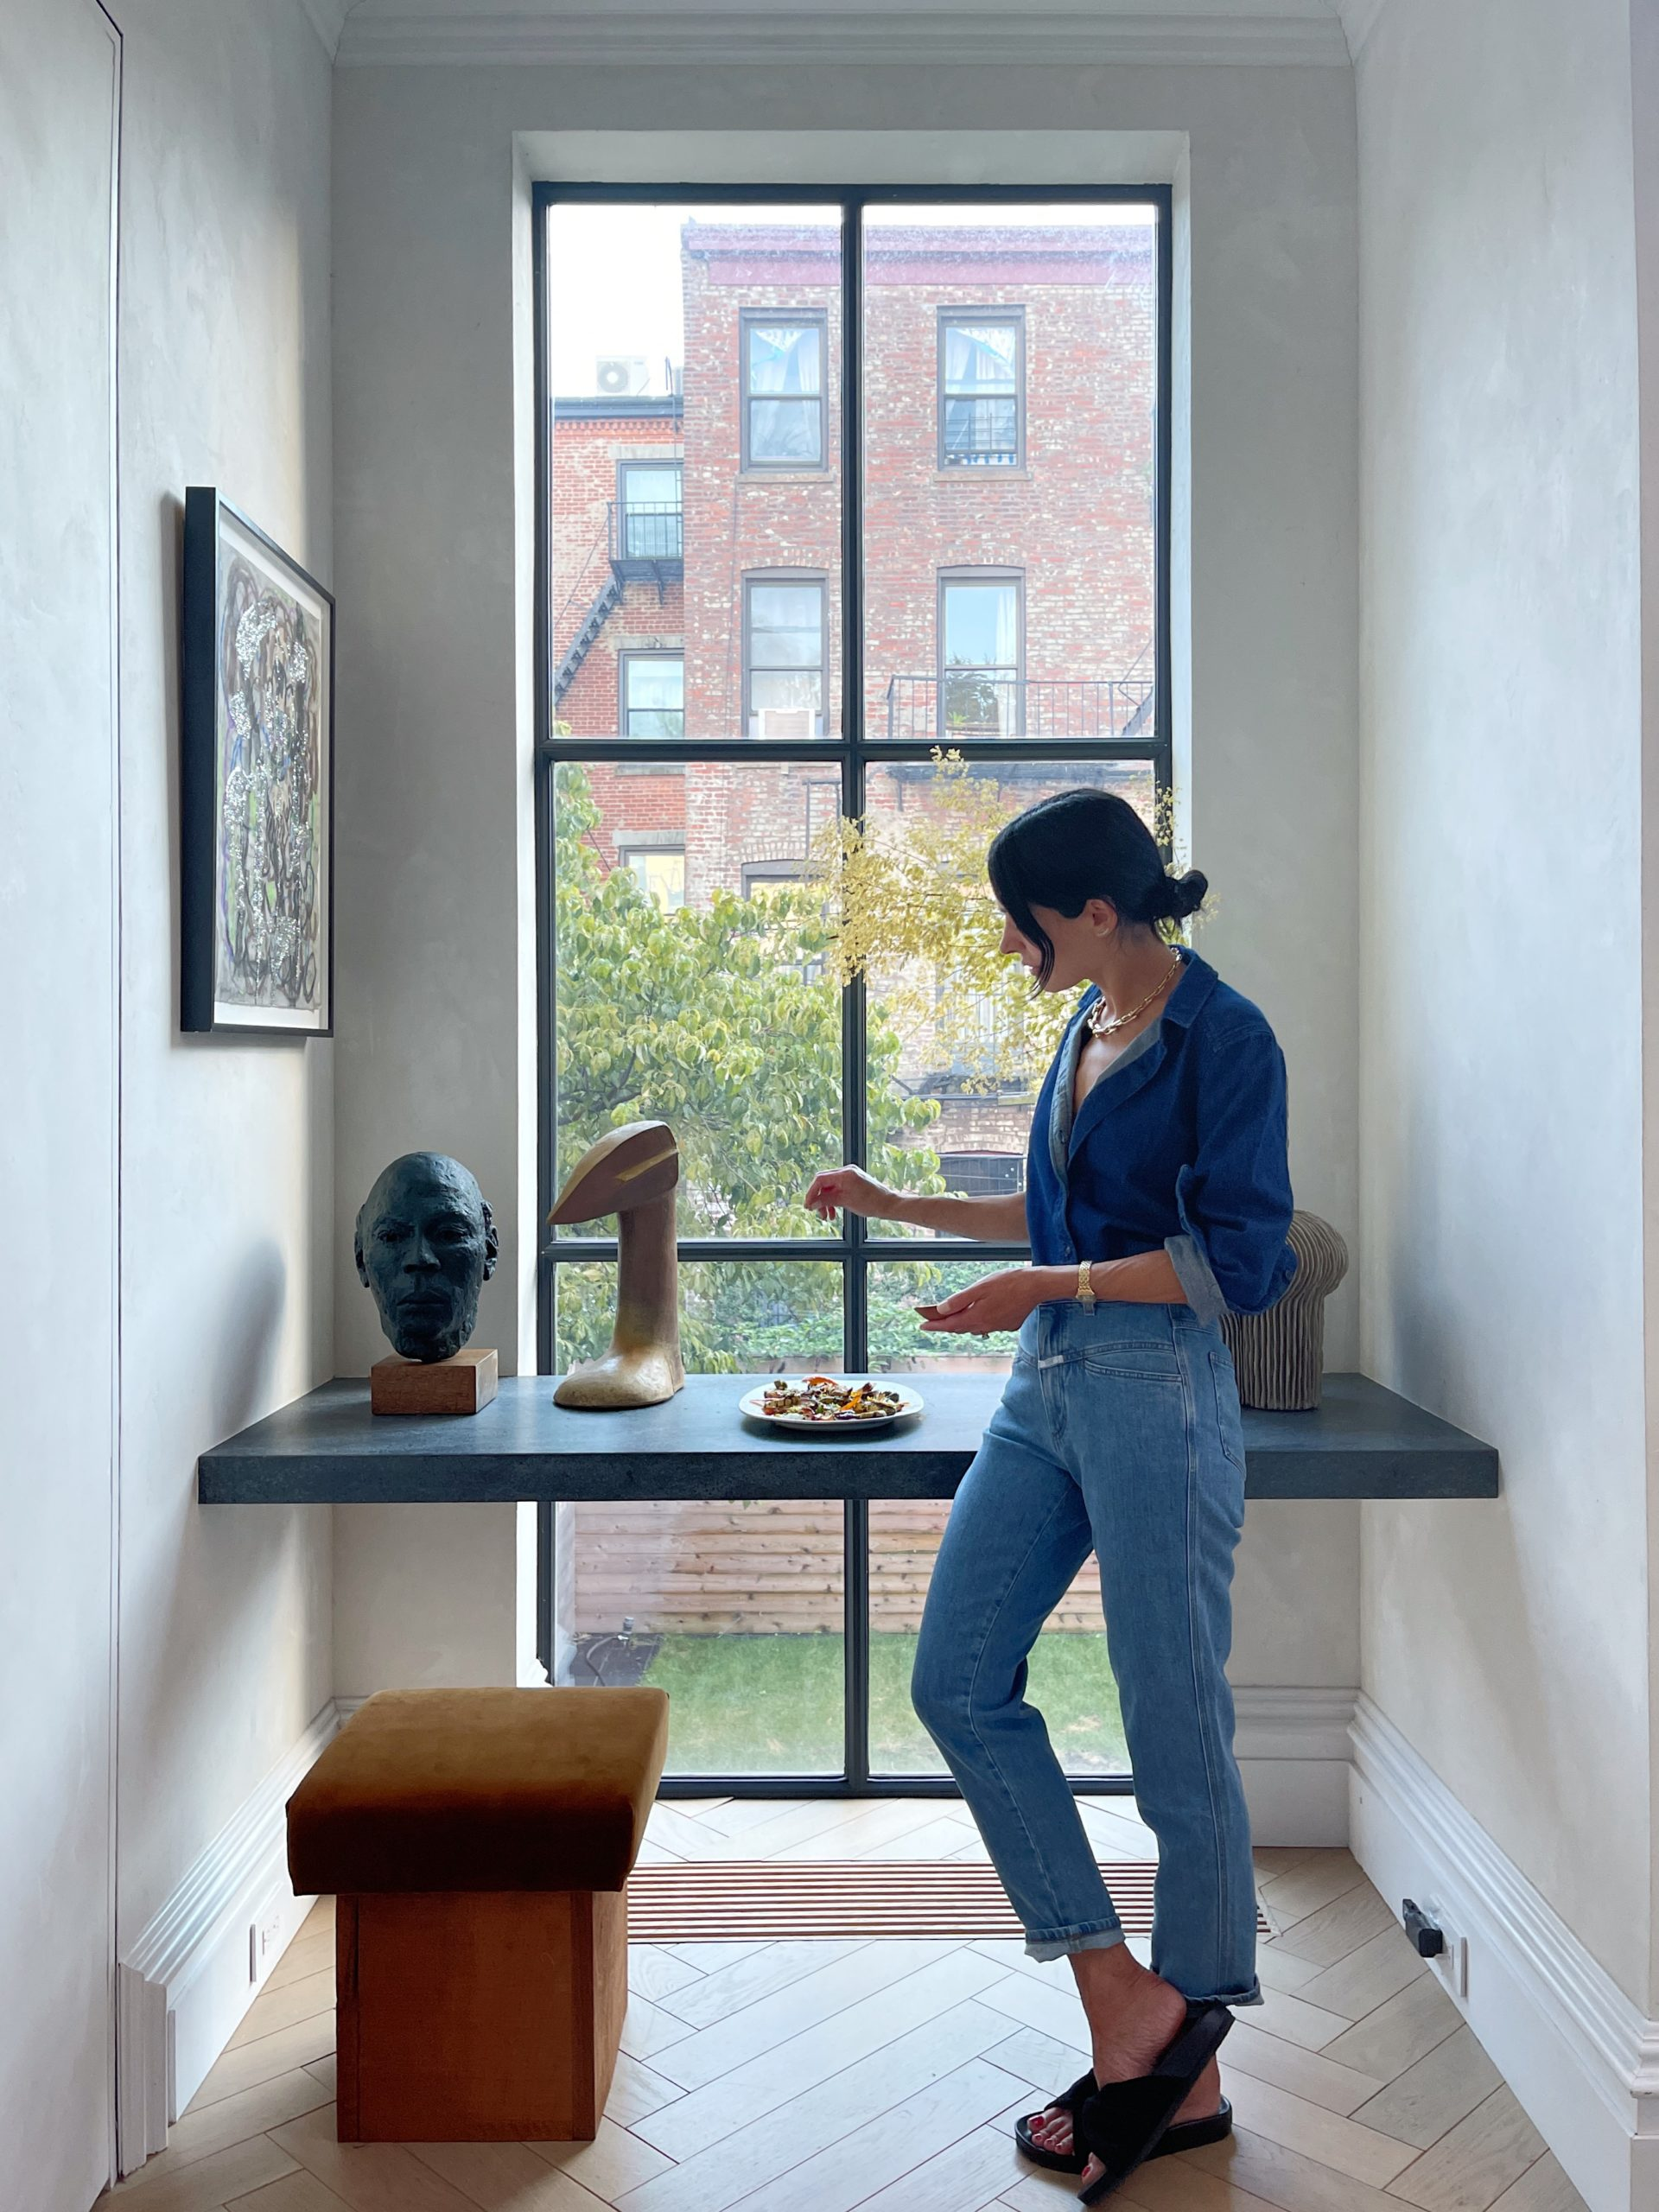 EyeSwoon Unplugged: A Date with Autumn Squash